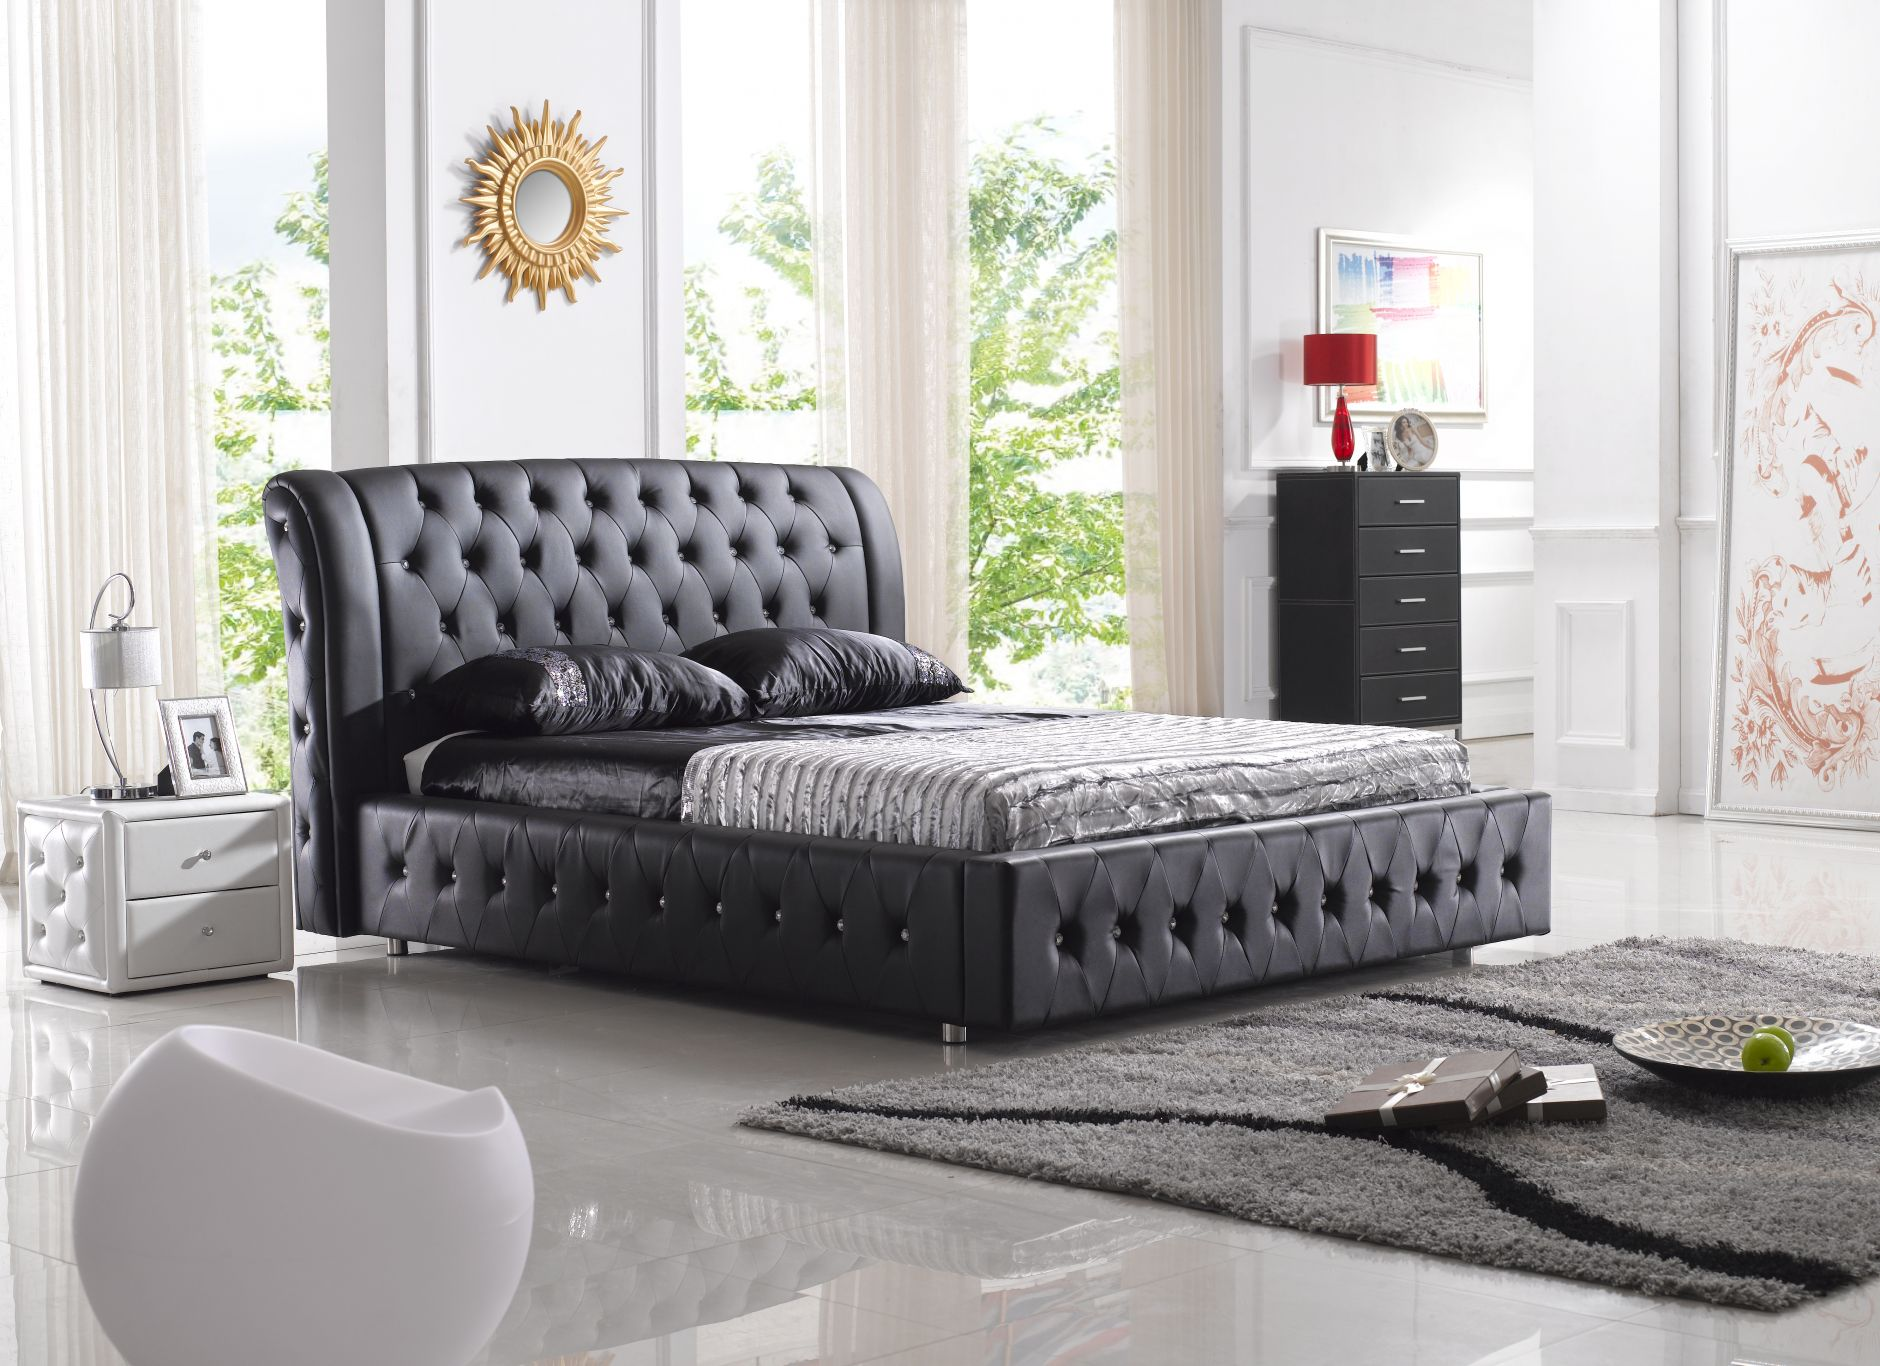 elegant chambre coucher de cuir modle b with meuble italien chambre a coucher. Black Bedroom Furniture Sets. Home Design Ideas